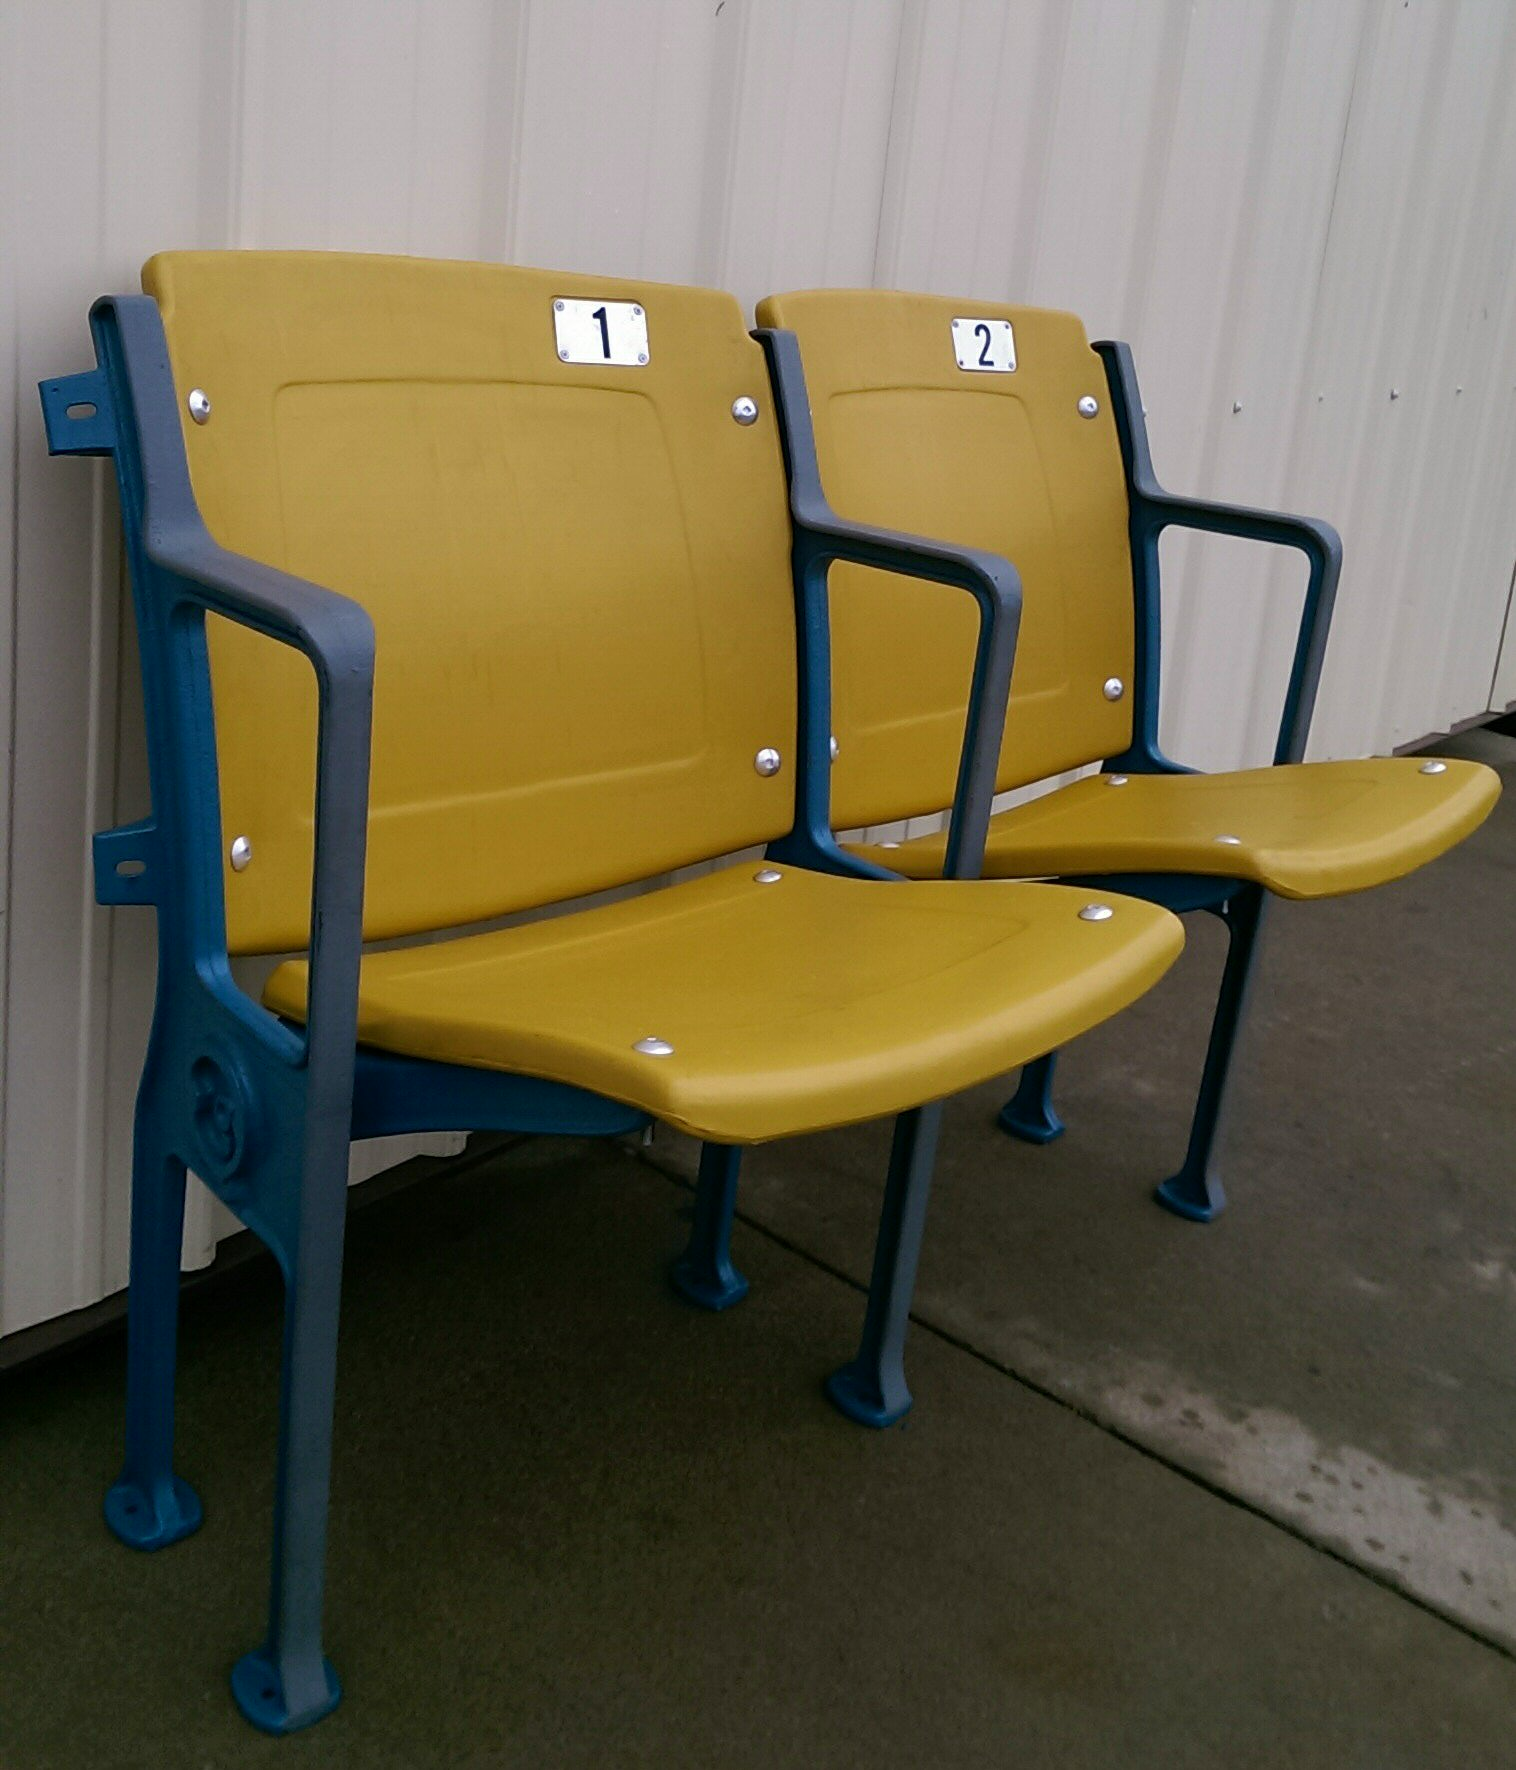 stadiumseating Collectible Stadium Seats